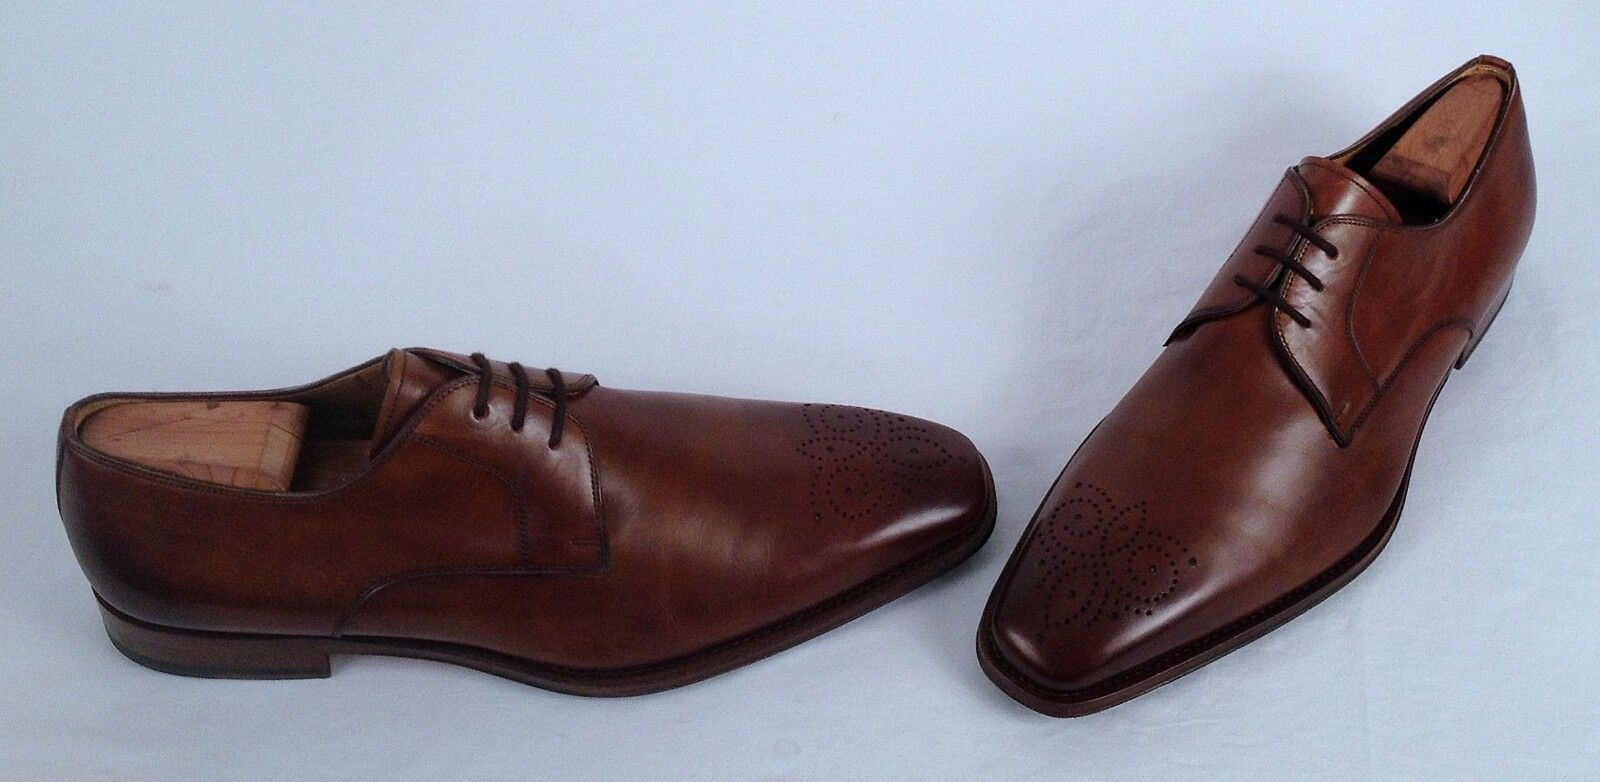 Magnanni 'Gerardo' Medallion Toe Oxford- Tobacco- Dimensione 11.5 M   350  (C23)